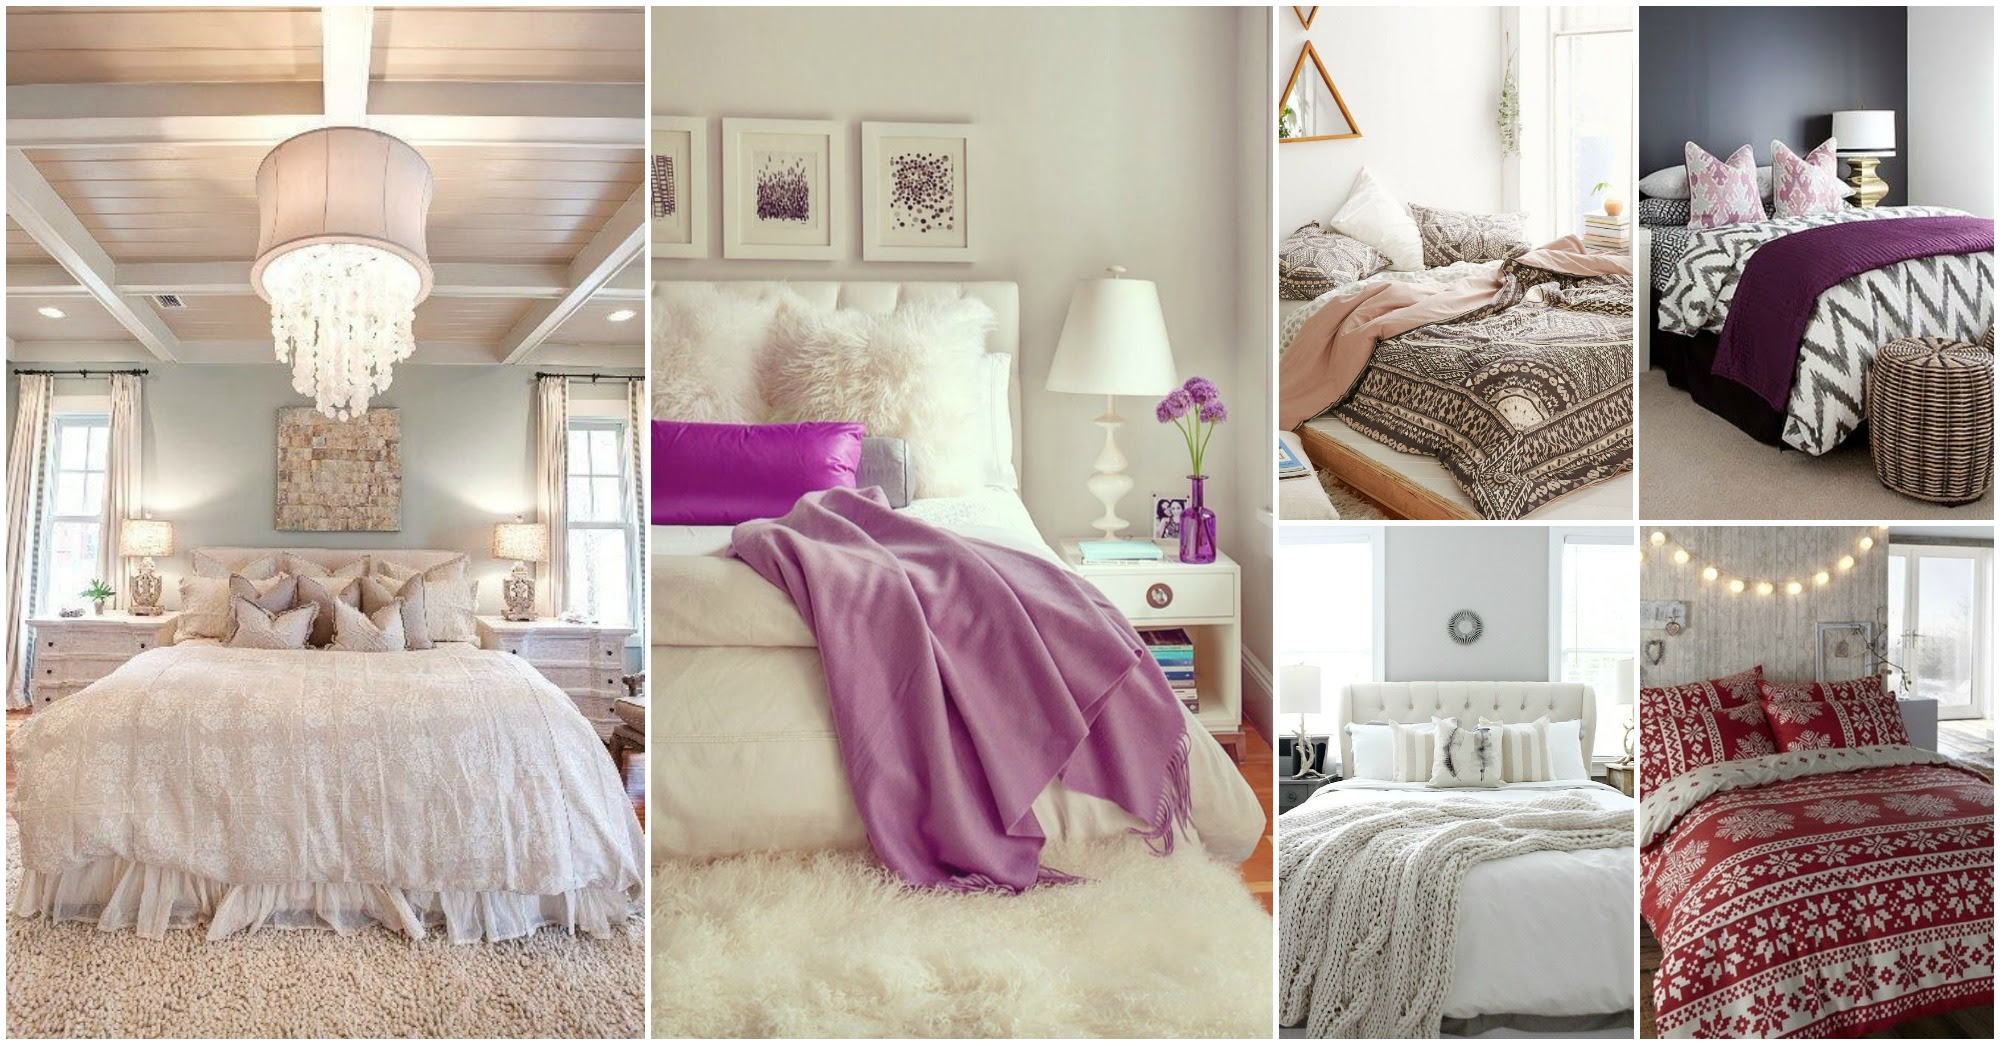 15 + Lovely Bedroom Decor Ideas That Will Steal The Show